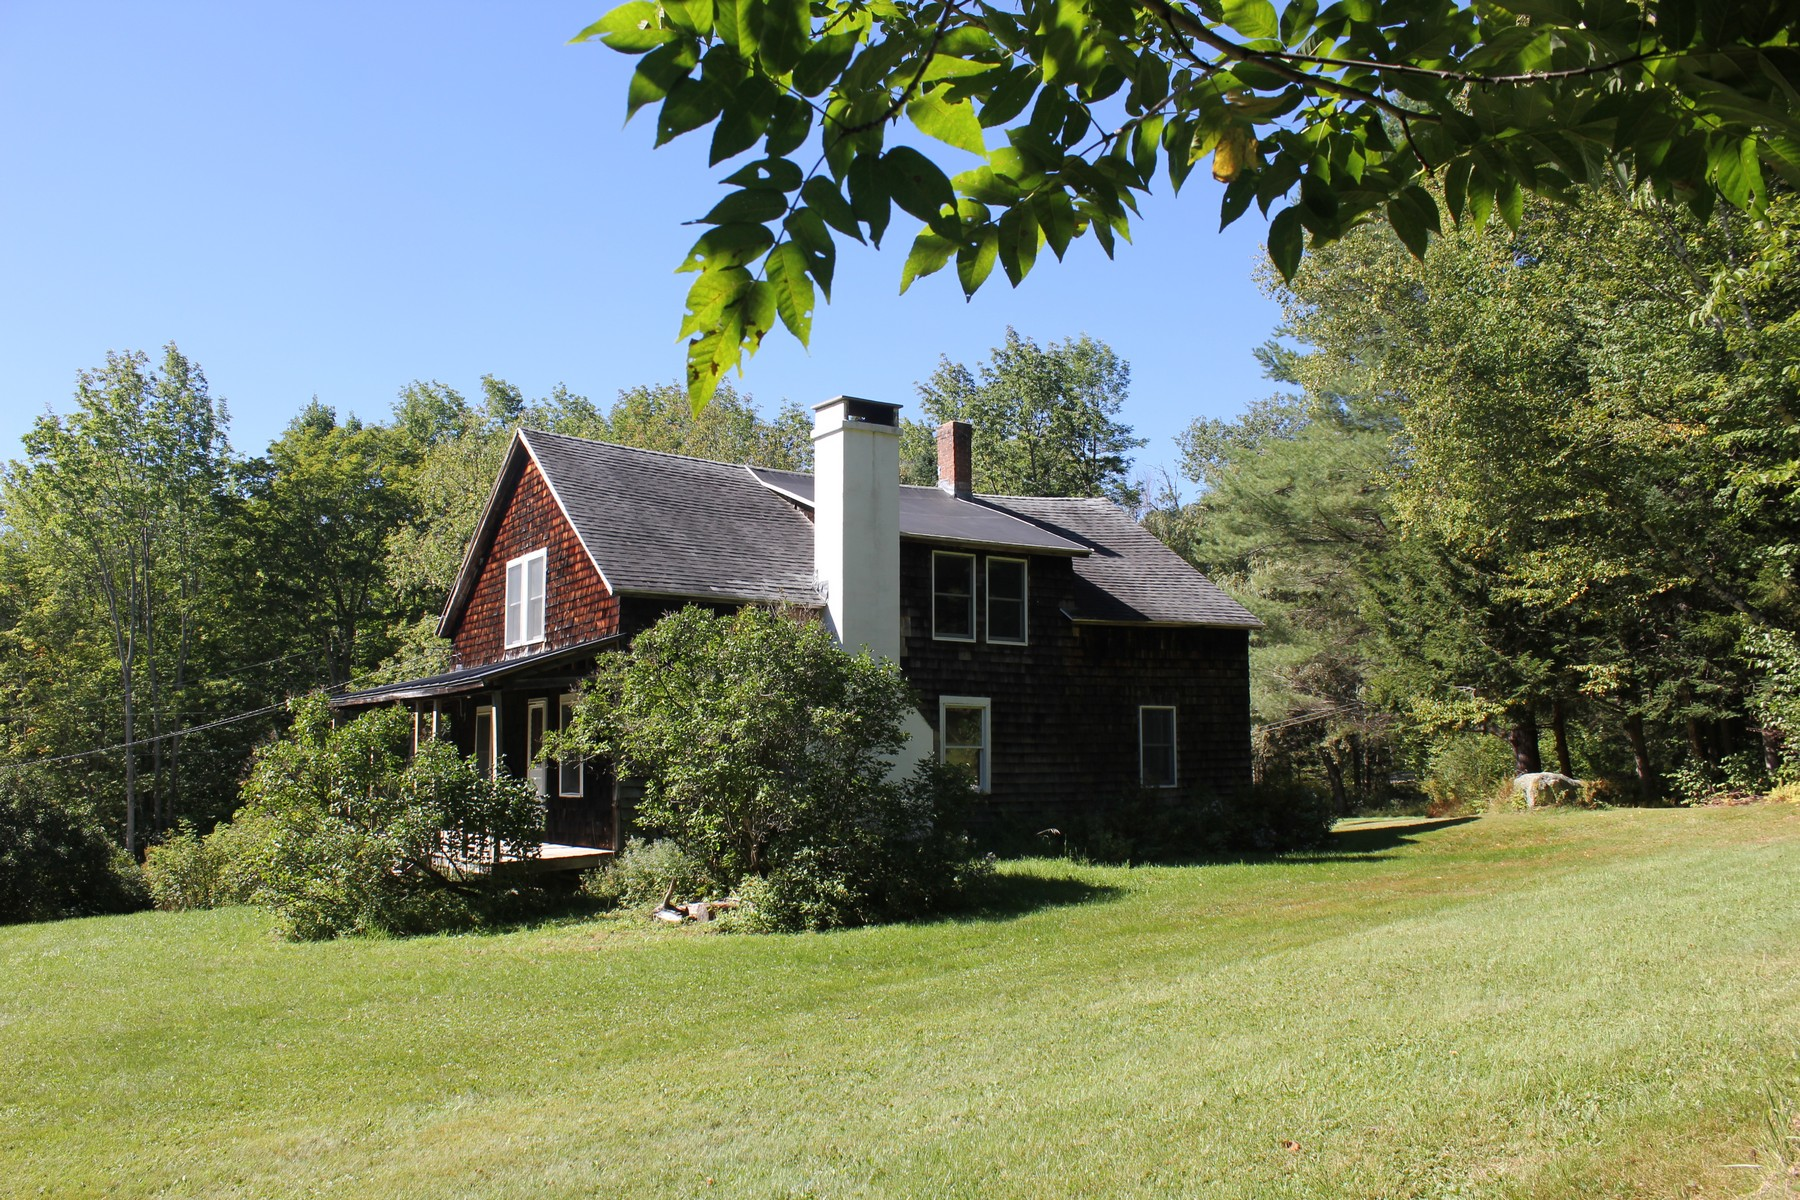 Casa Unifamiliar por un Venta en Quiet Country Setting 4553 East Hill Rd Andover, Vermont, 05143 Estados Unidos